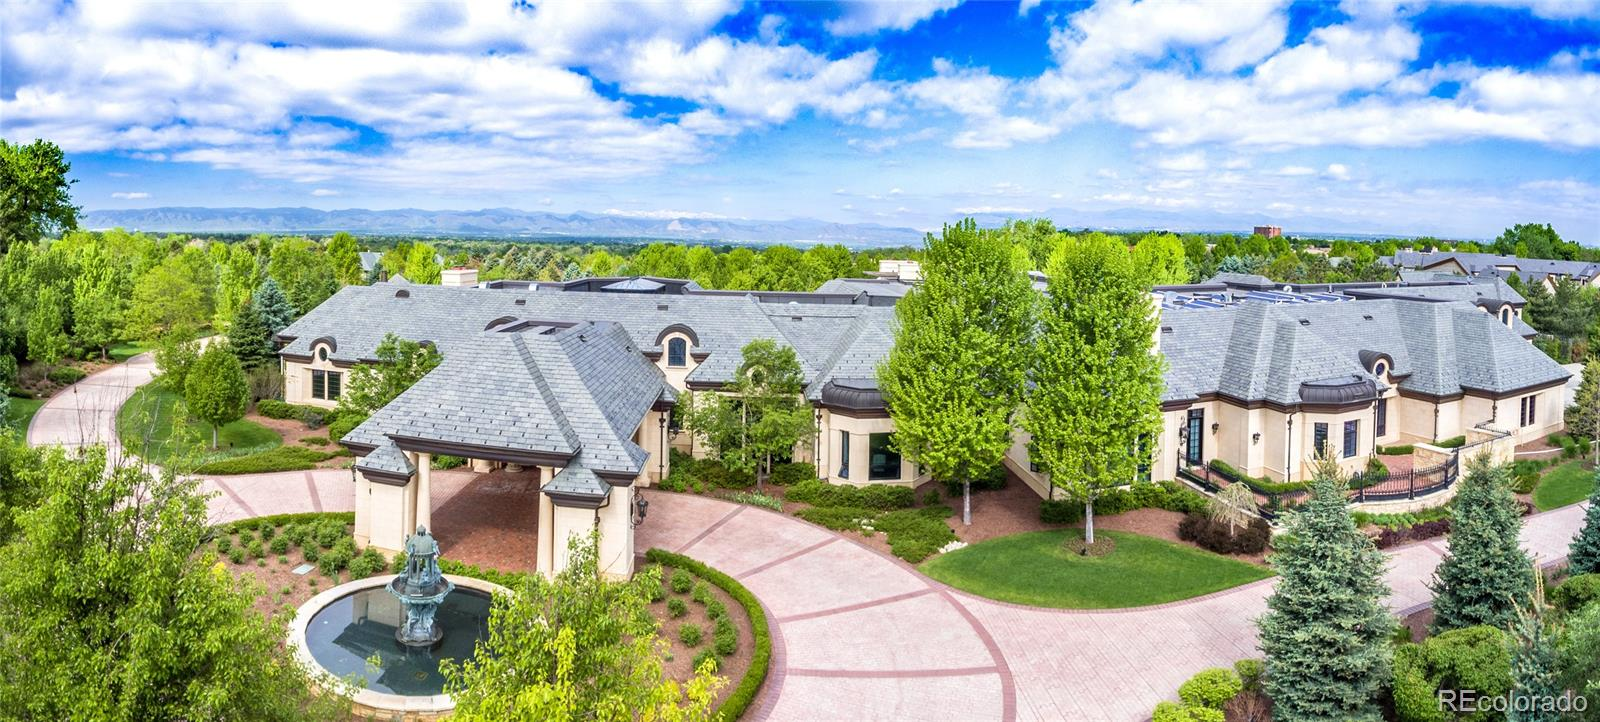 Photo of 8  Cherry Hills Park Drive, Cherry Hills Village, CO 80113